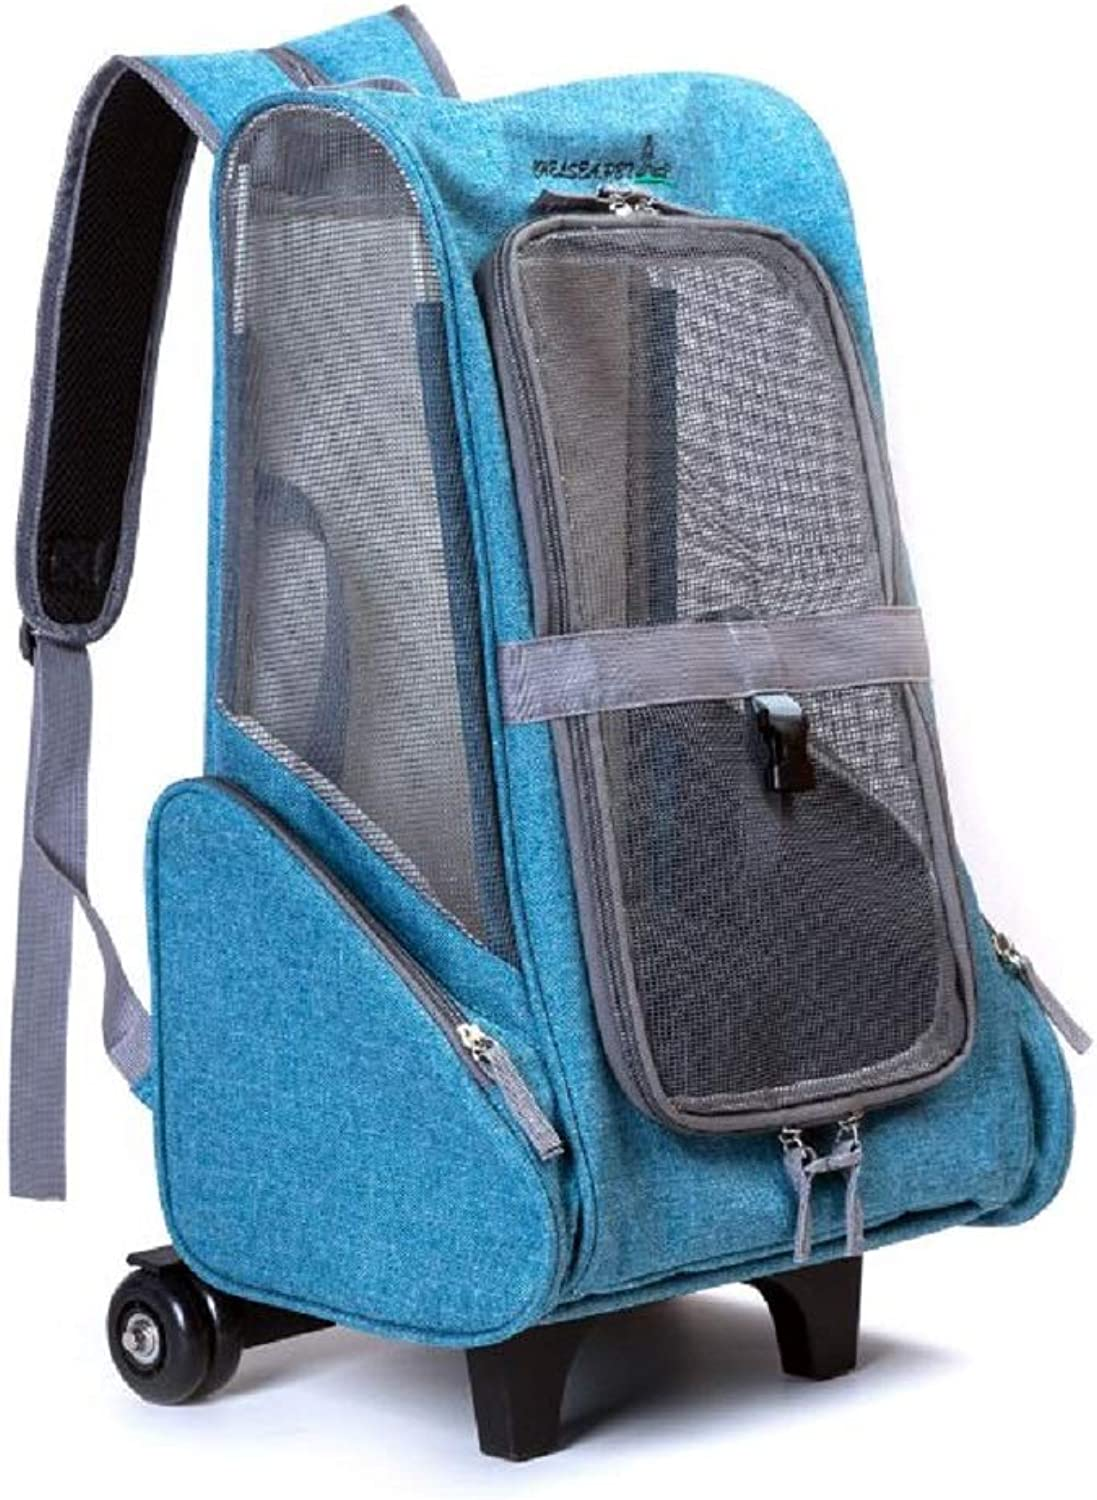 GDDYQ Pet Trolley Bag, Breathable and Lightweight Pet Backpack for Cats and Small Dogs, Hiking, Antiescape Buckle